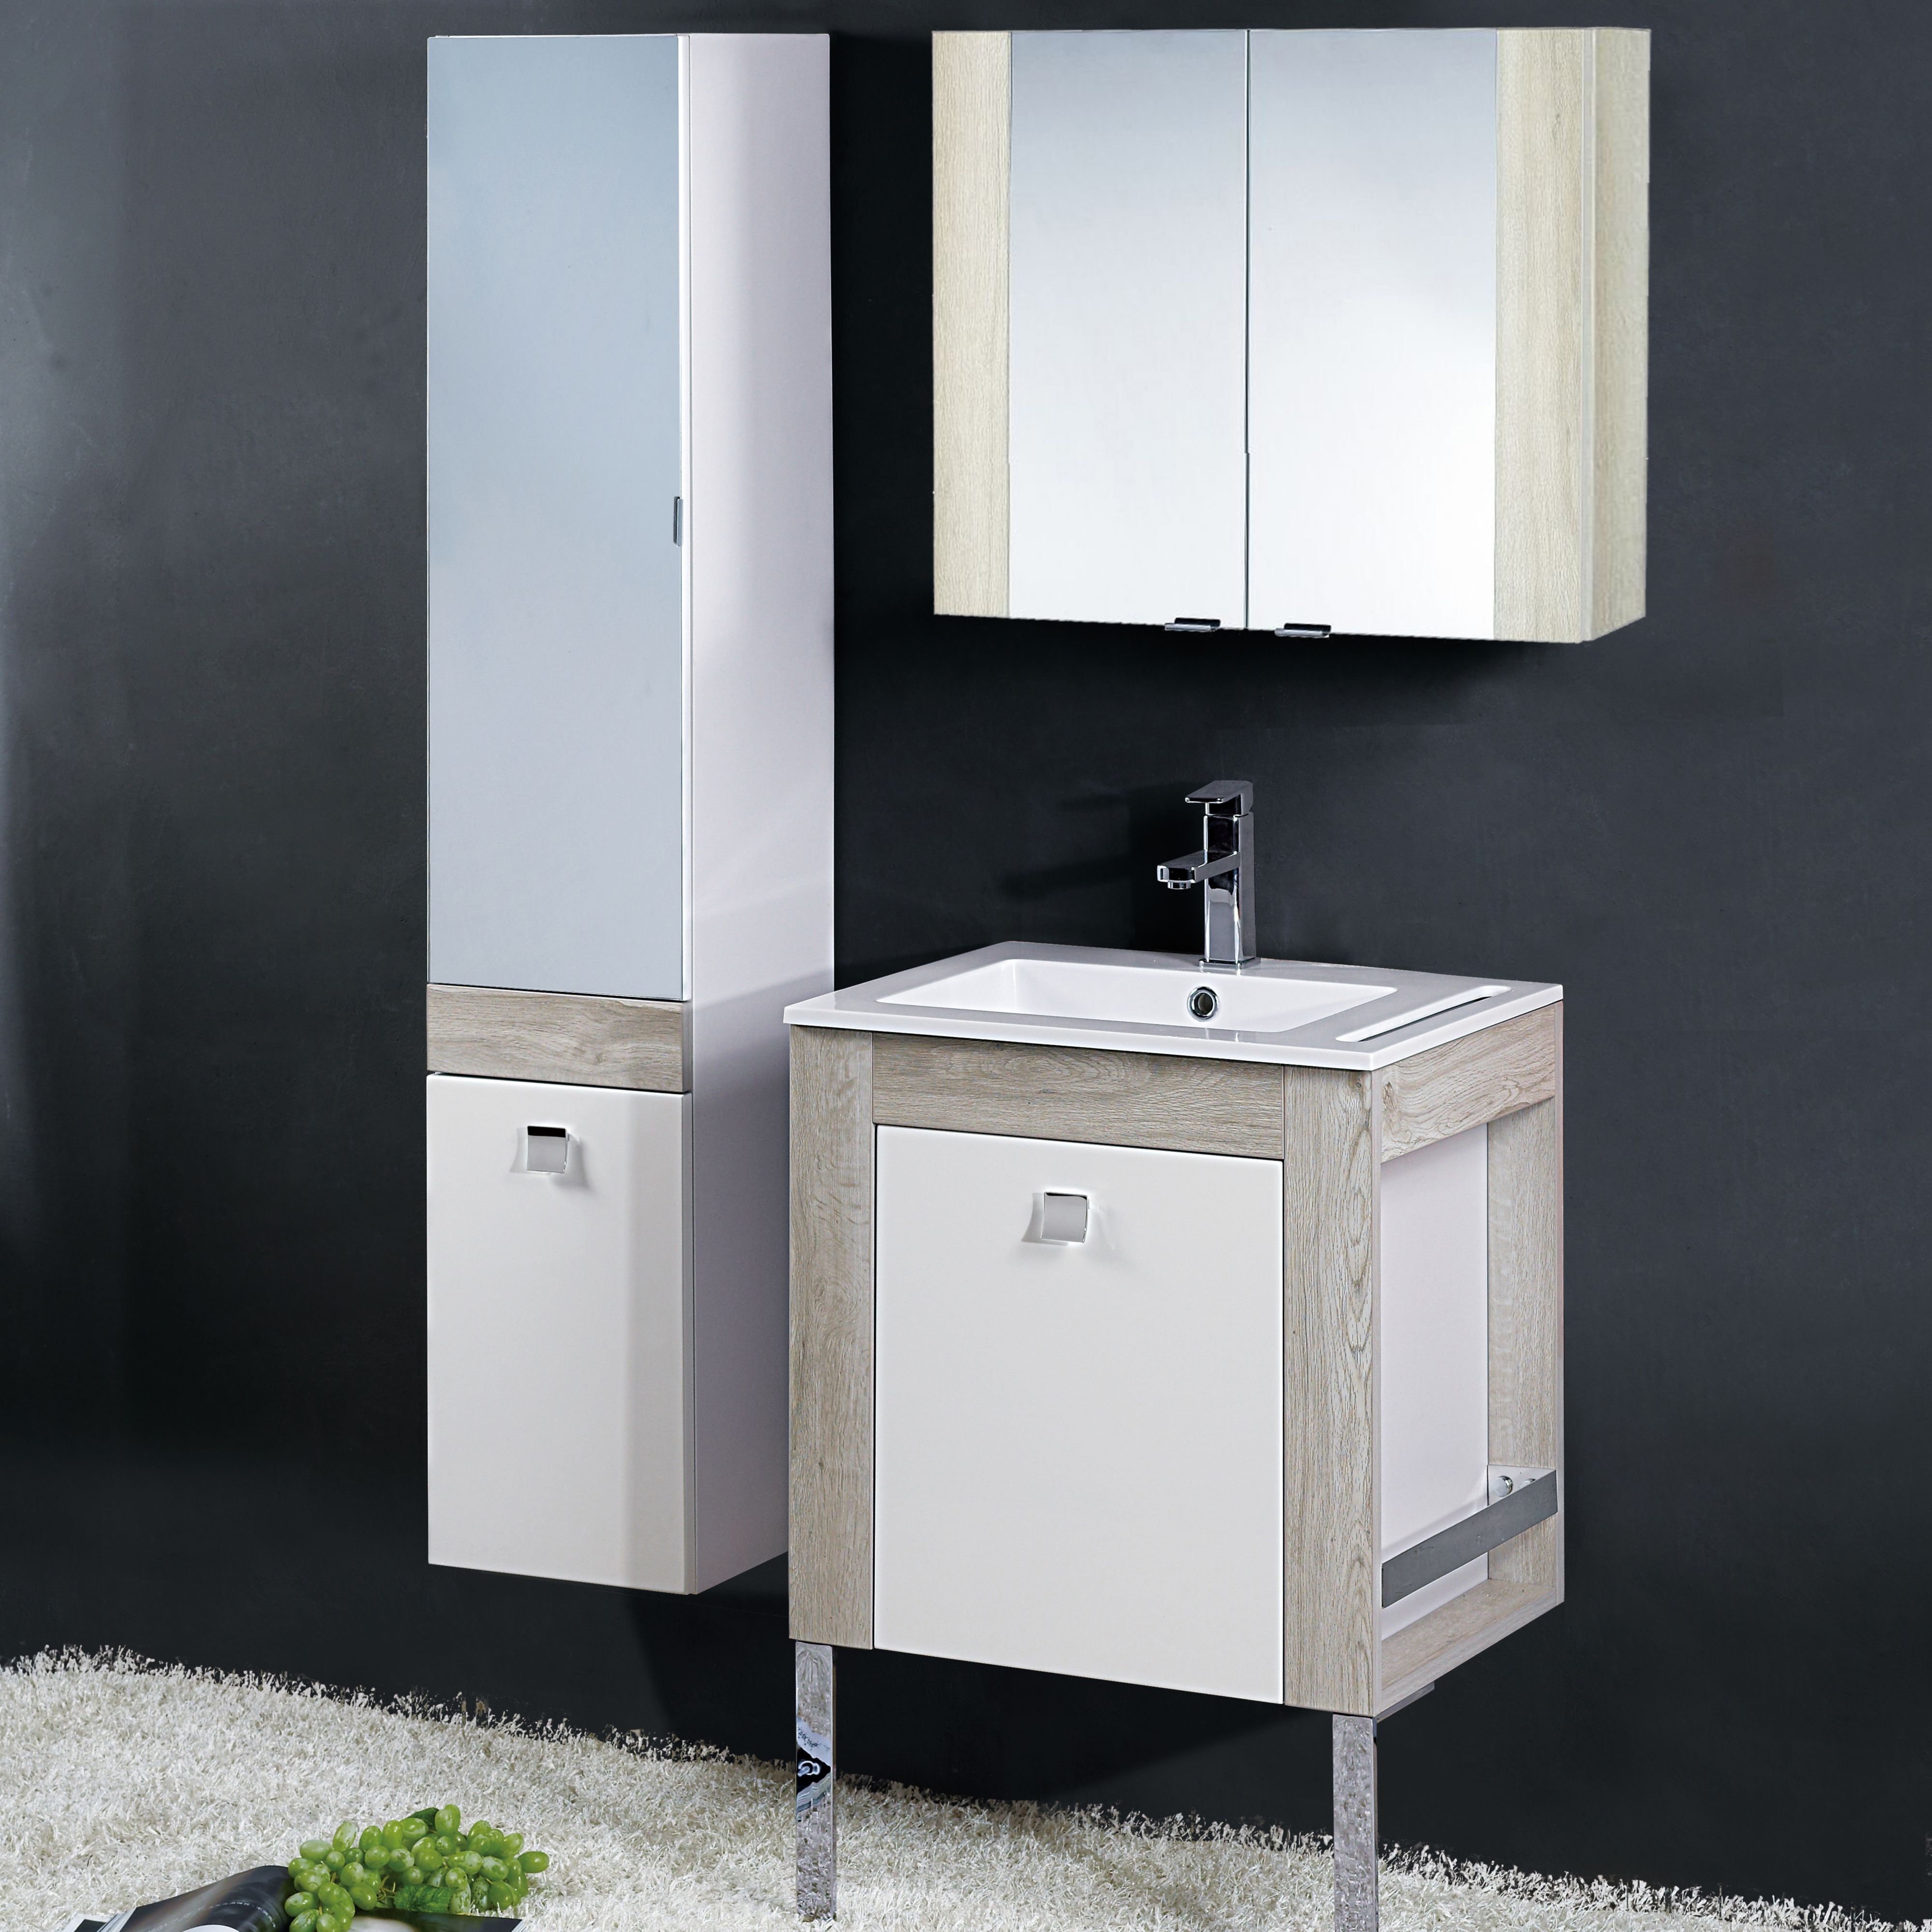 amazon freestanding bathroom furniture VDQIJMY